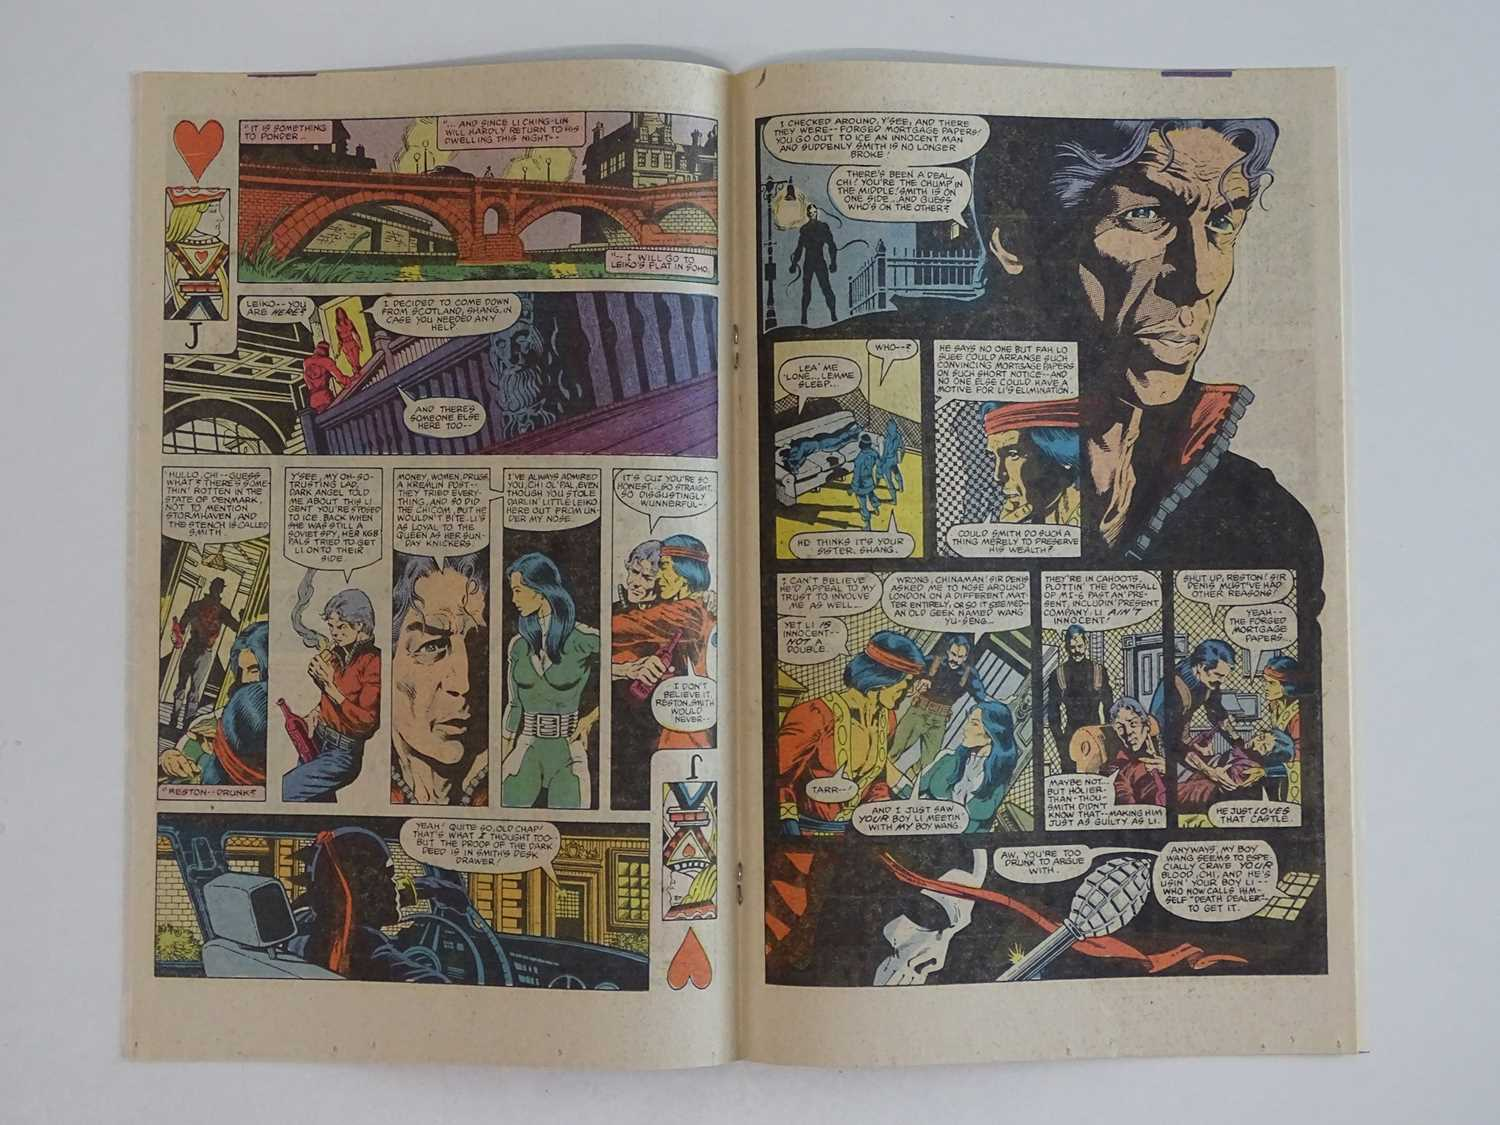 HANDS OF SHANG-CHI: MASTER OF KUNG FU #115 - (1982 - MARVEL) - Modern KEY - First appearance of - Image 5 of 9